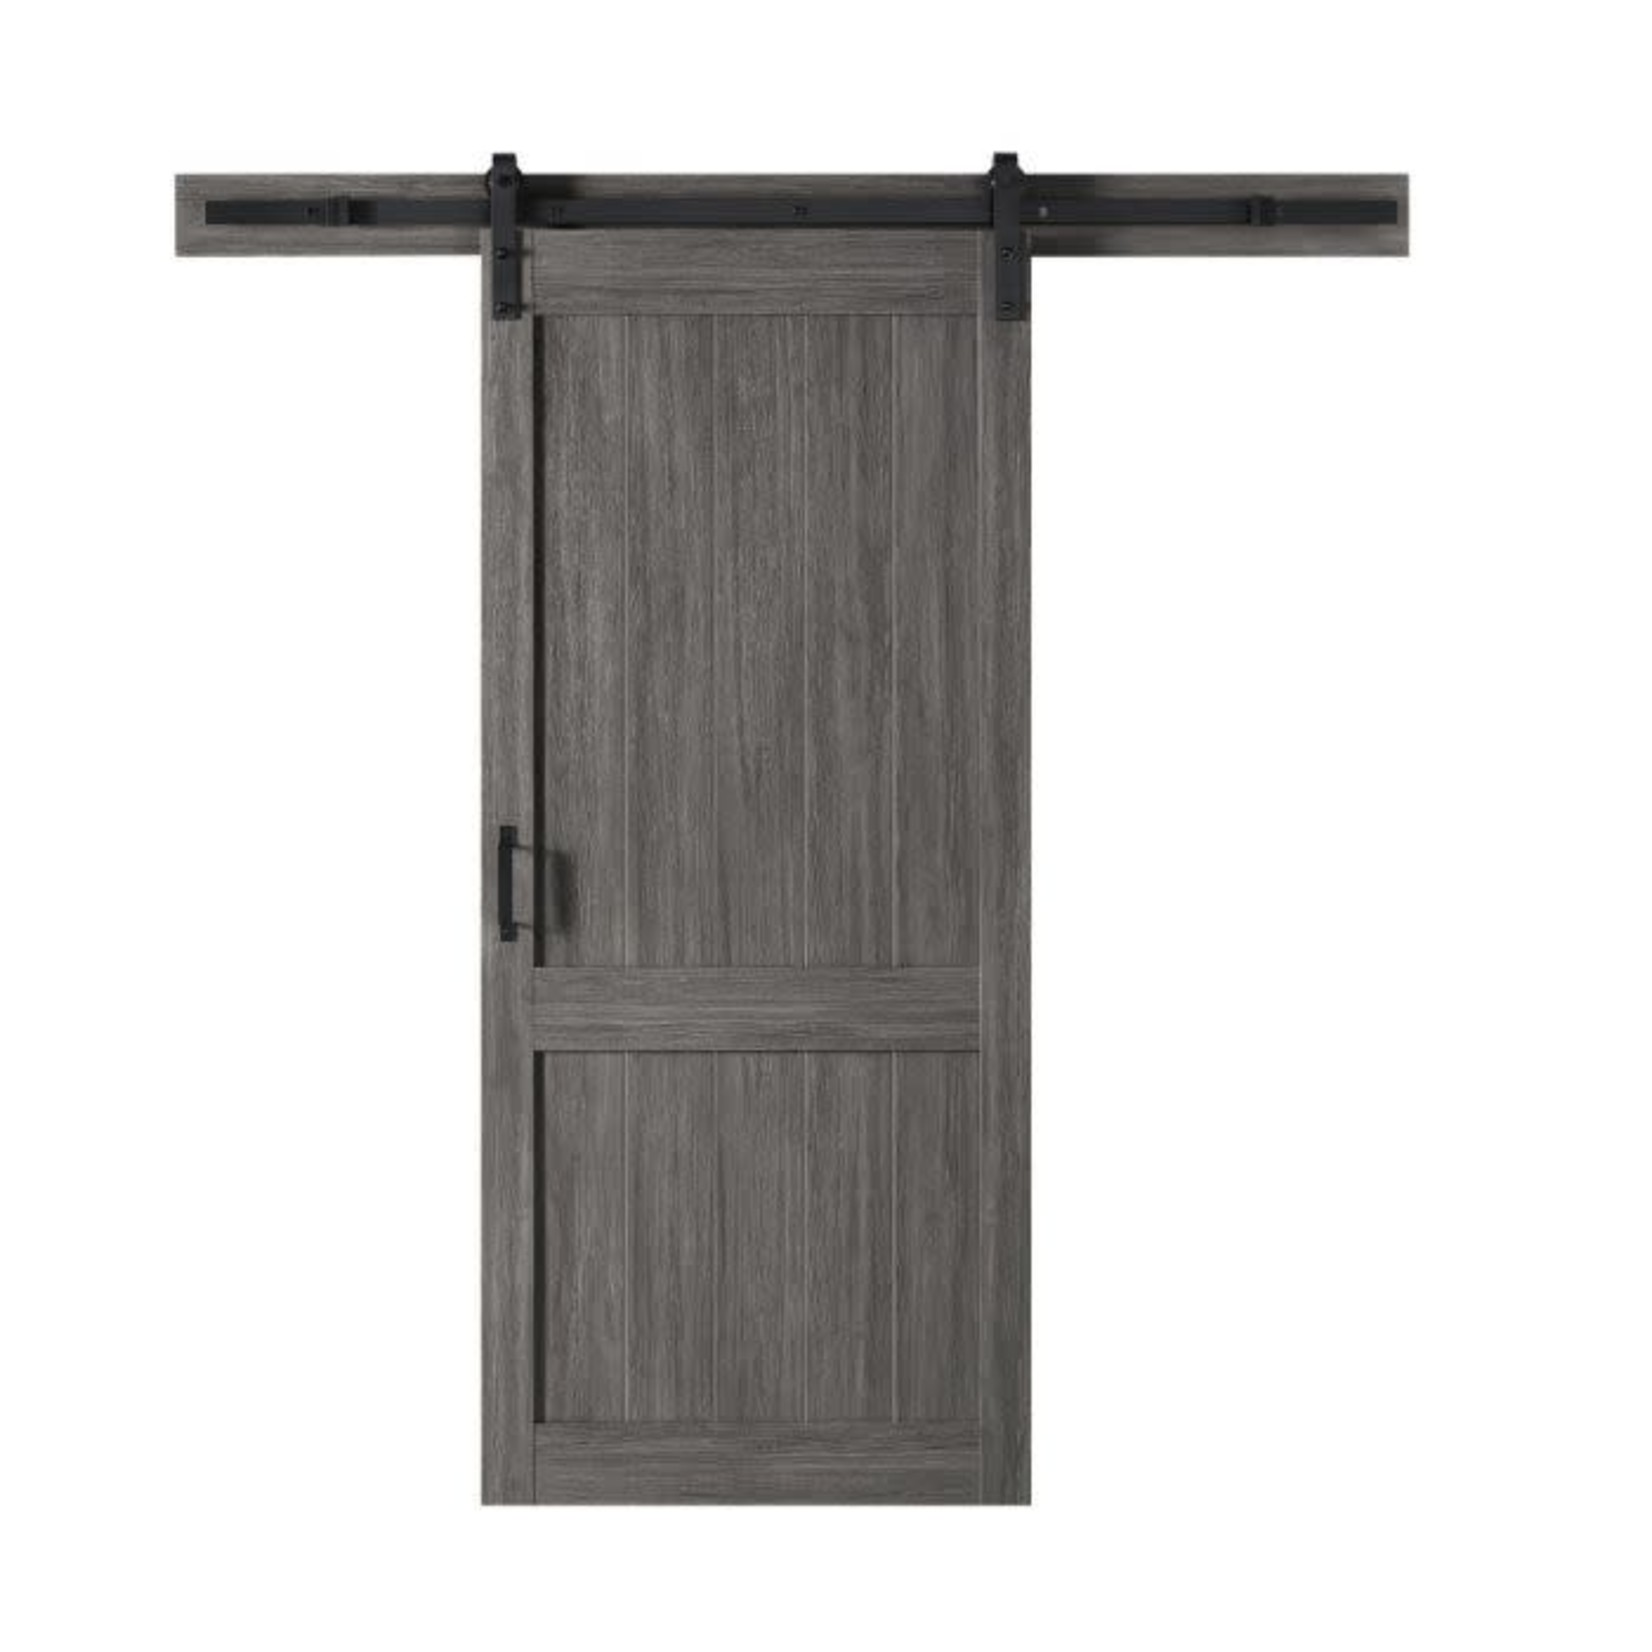 Barn Door Ove Homestead 106JS 36x84 Carbon Gray